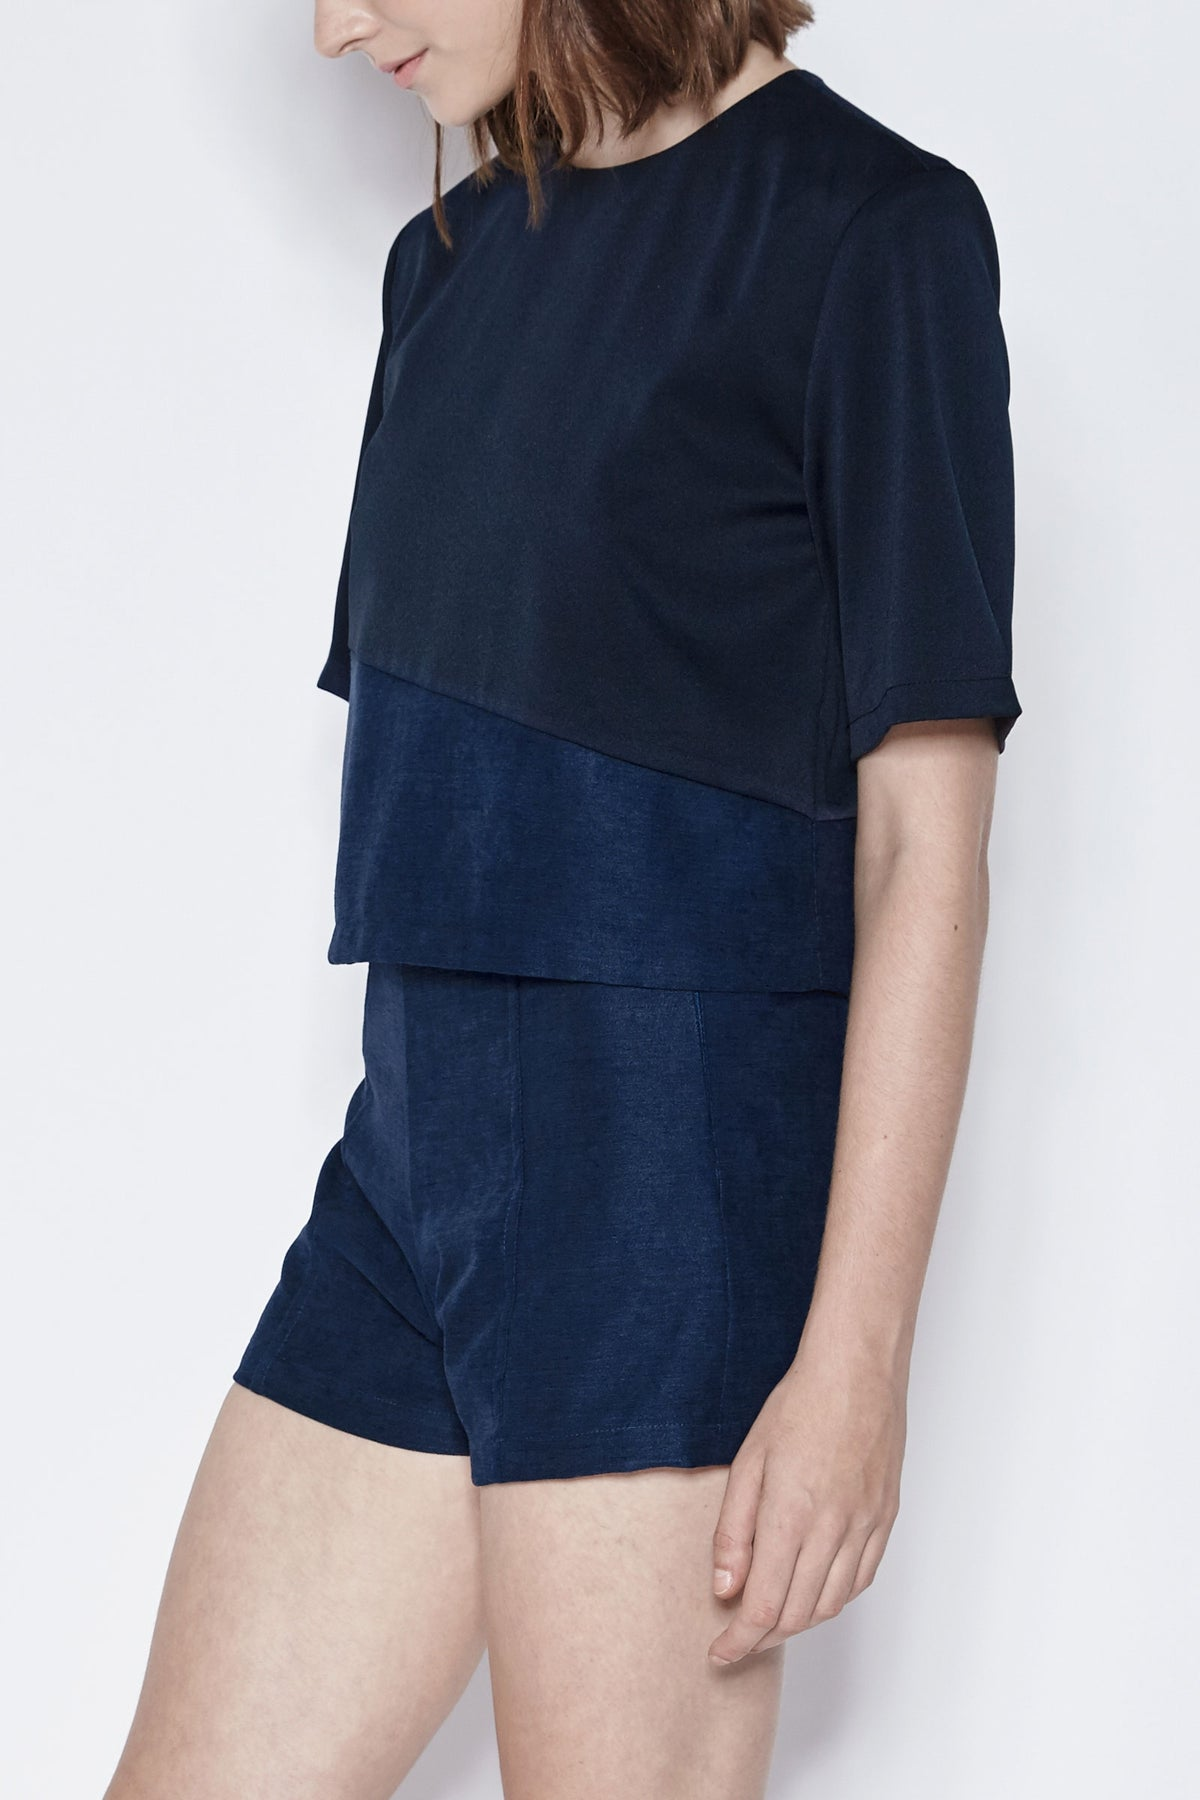 Suede Insert Top In Navy